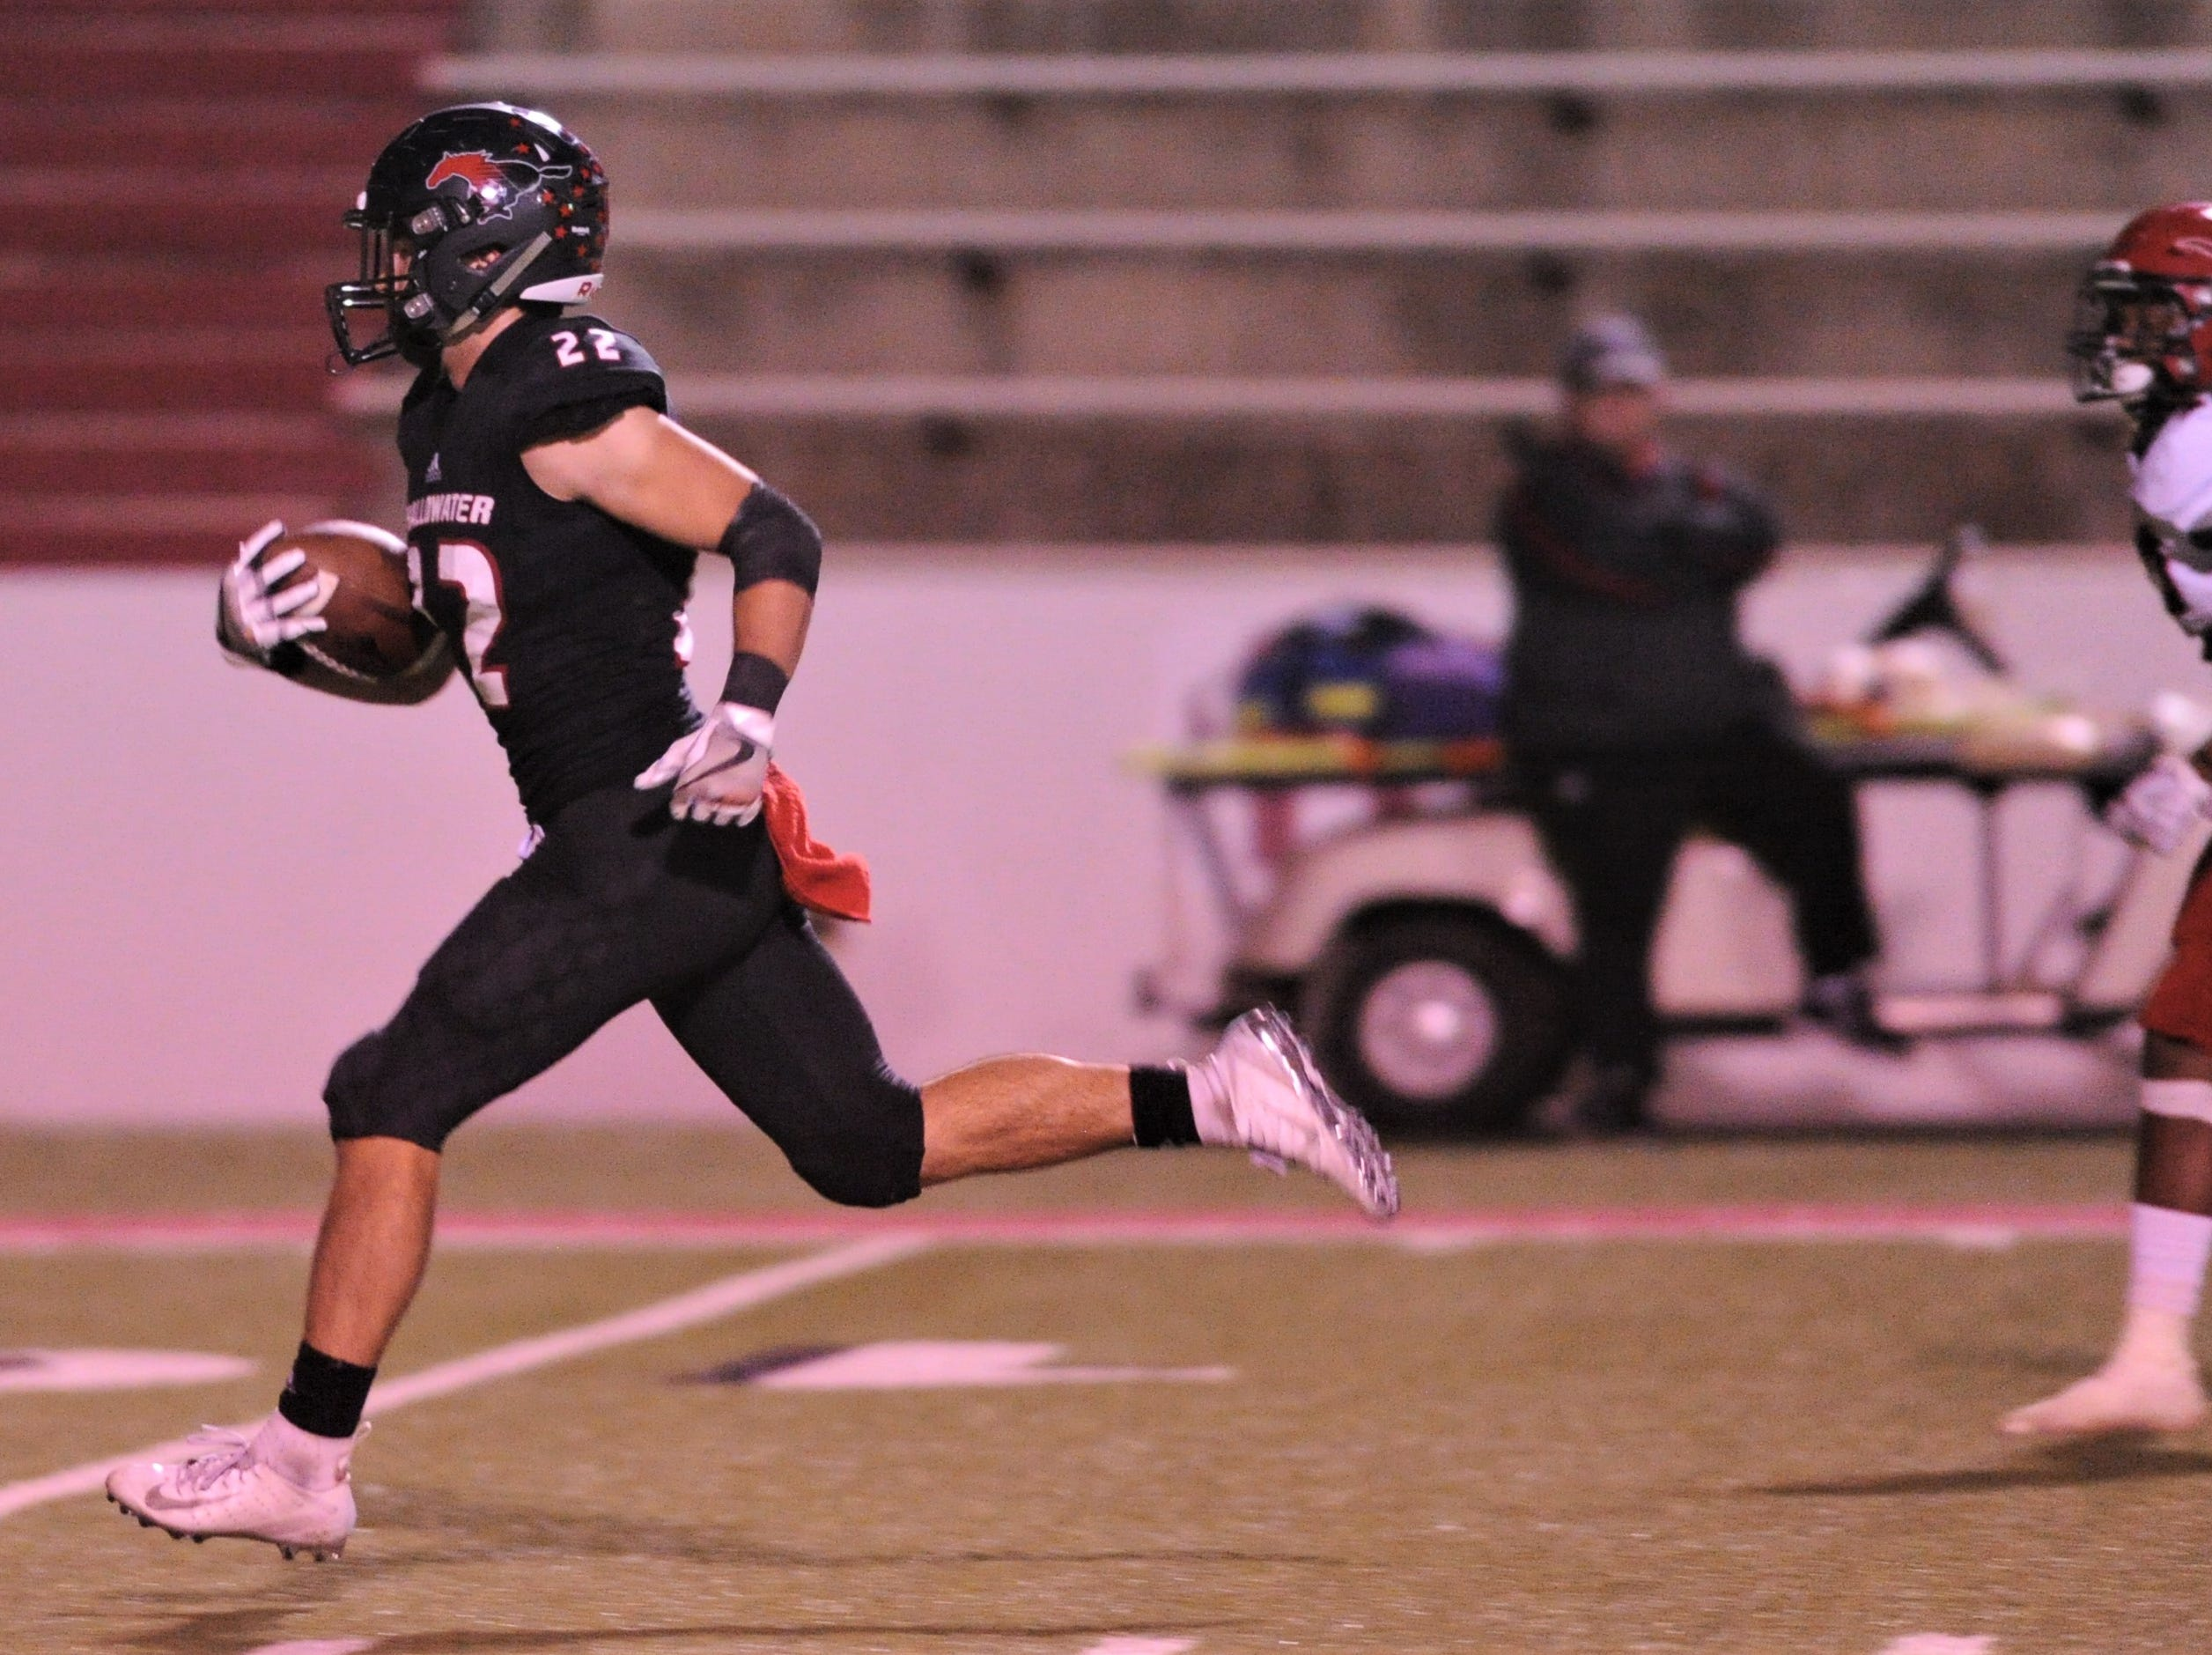 Shallowater's Hayden VanderRoest, right, runs for a touchdown against Eastland. Shallowater beat the Mavericks 56-21 in the Region I-3A Division I semifinal playoff game Thursday, Nov. 29, 2018, at the Mustang Bowl in Sweetwater.